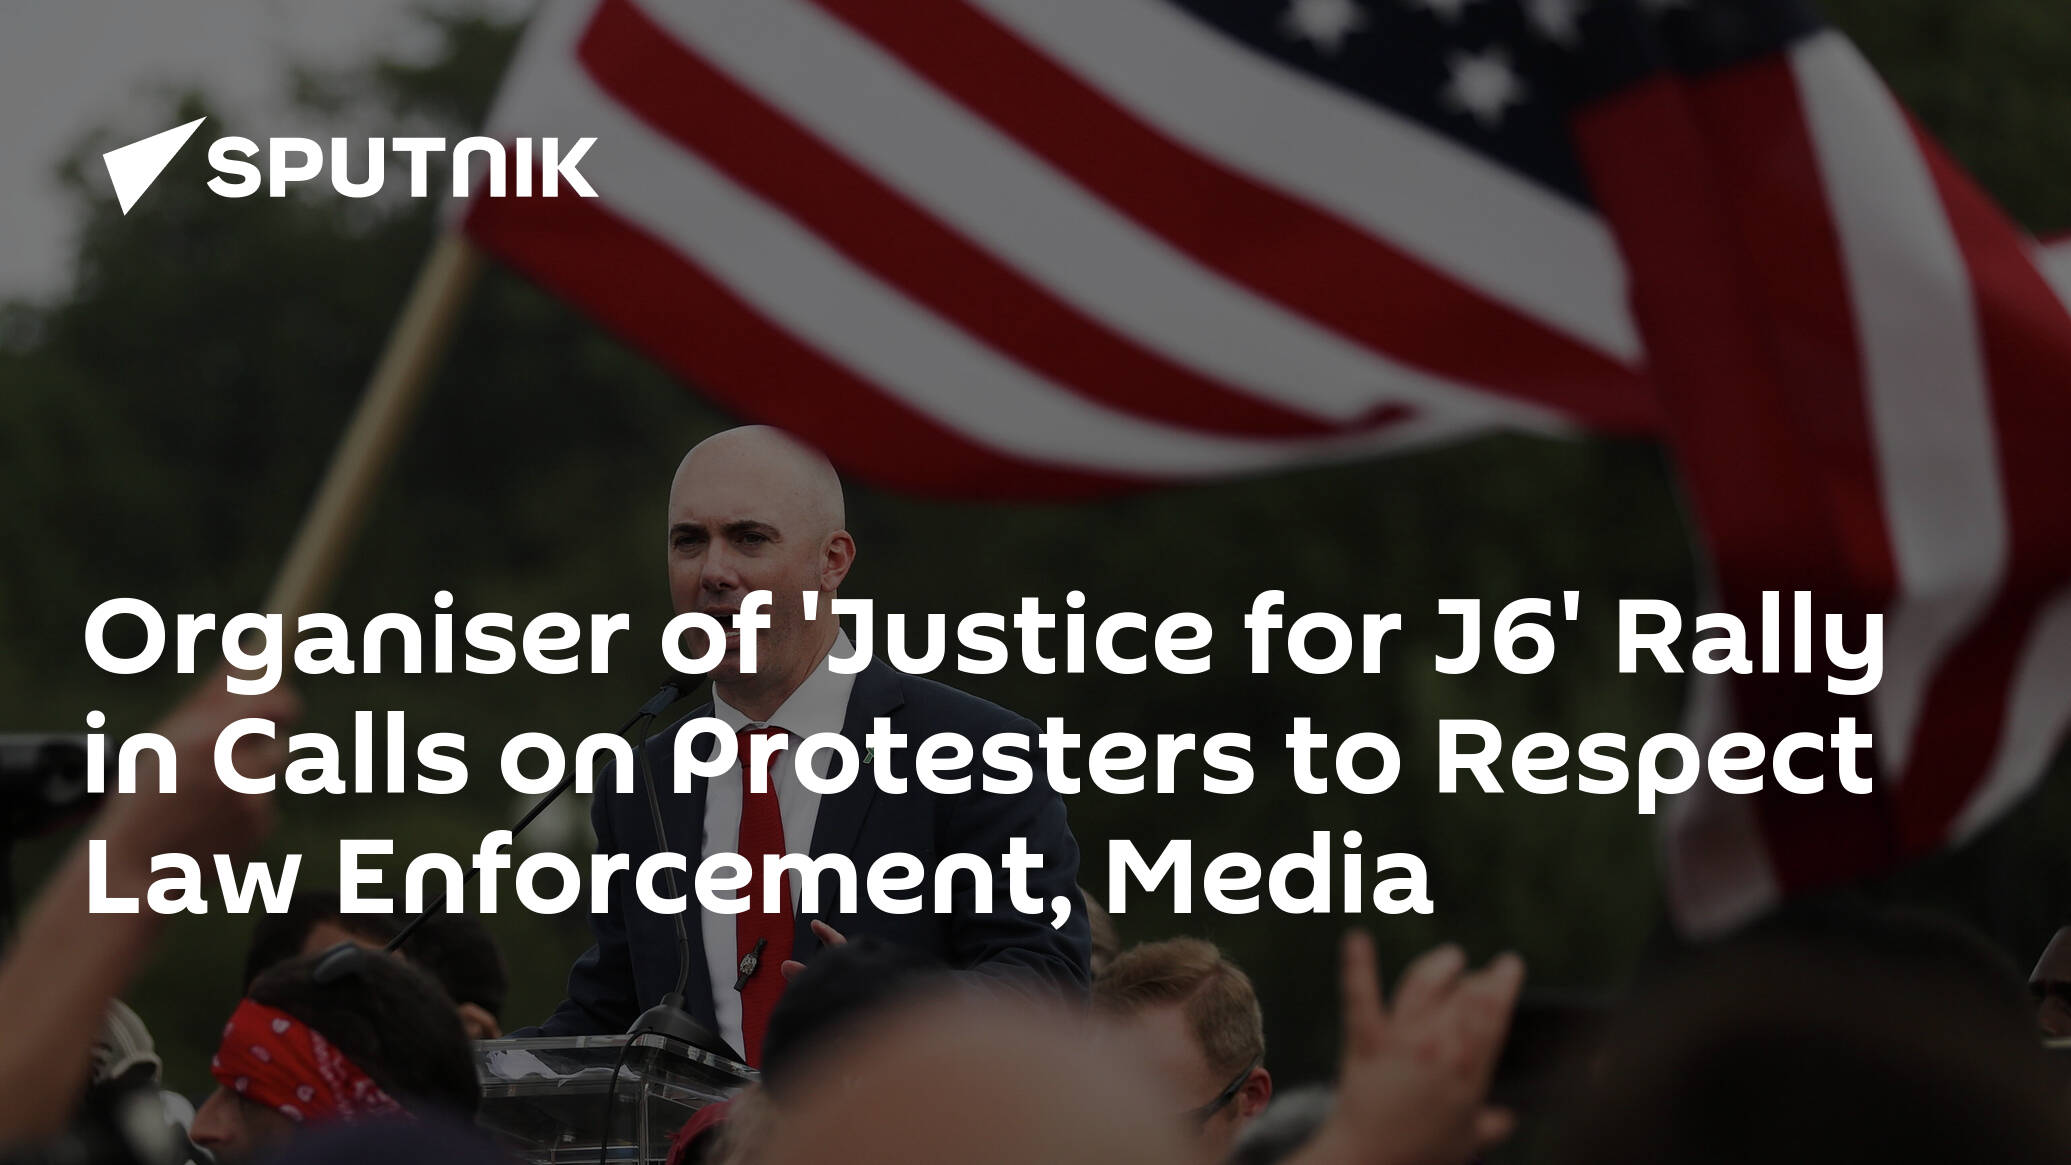 Organiser of 'Justice for J6' Rally in Calls on Protesters to Respect Law Enforcement, Media